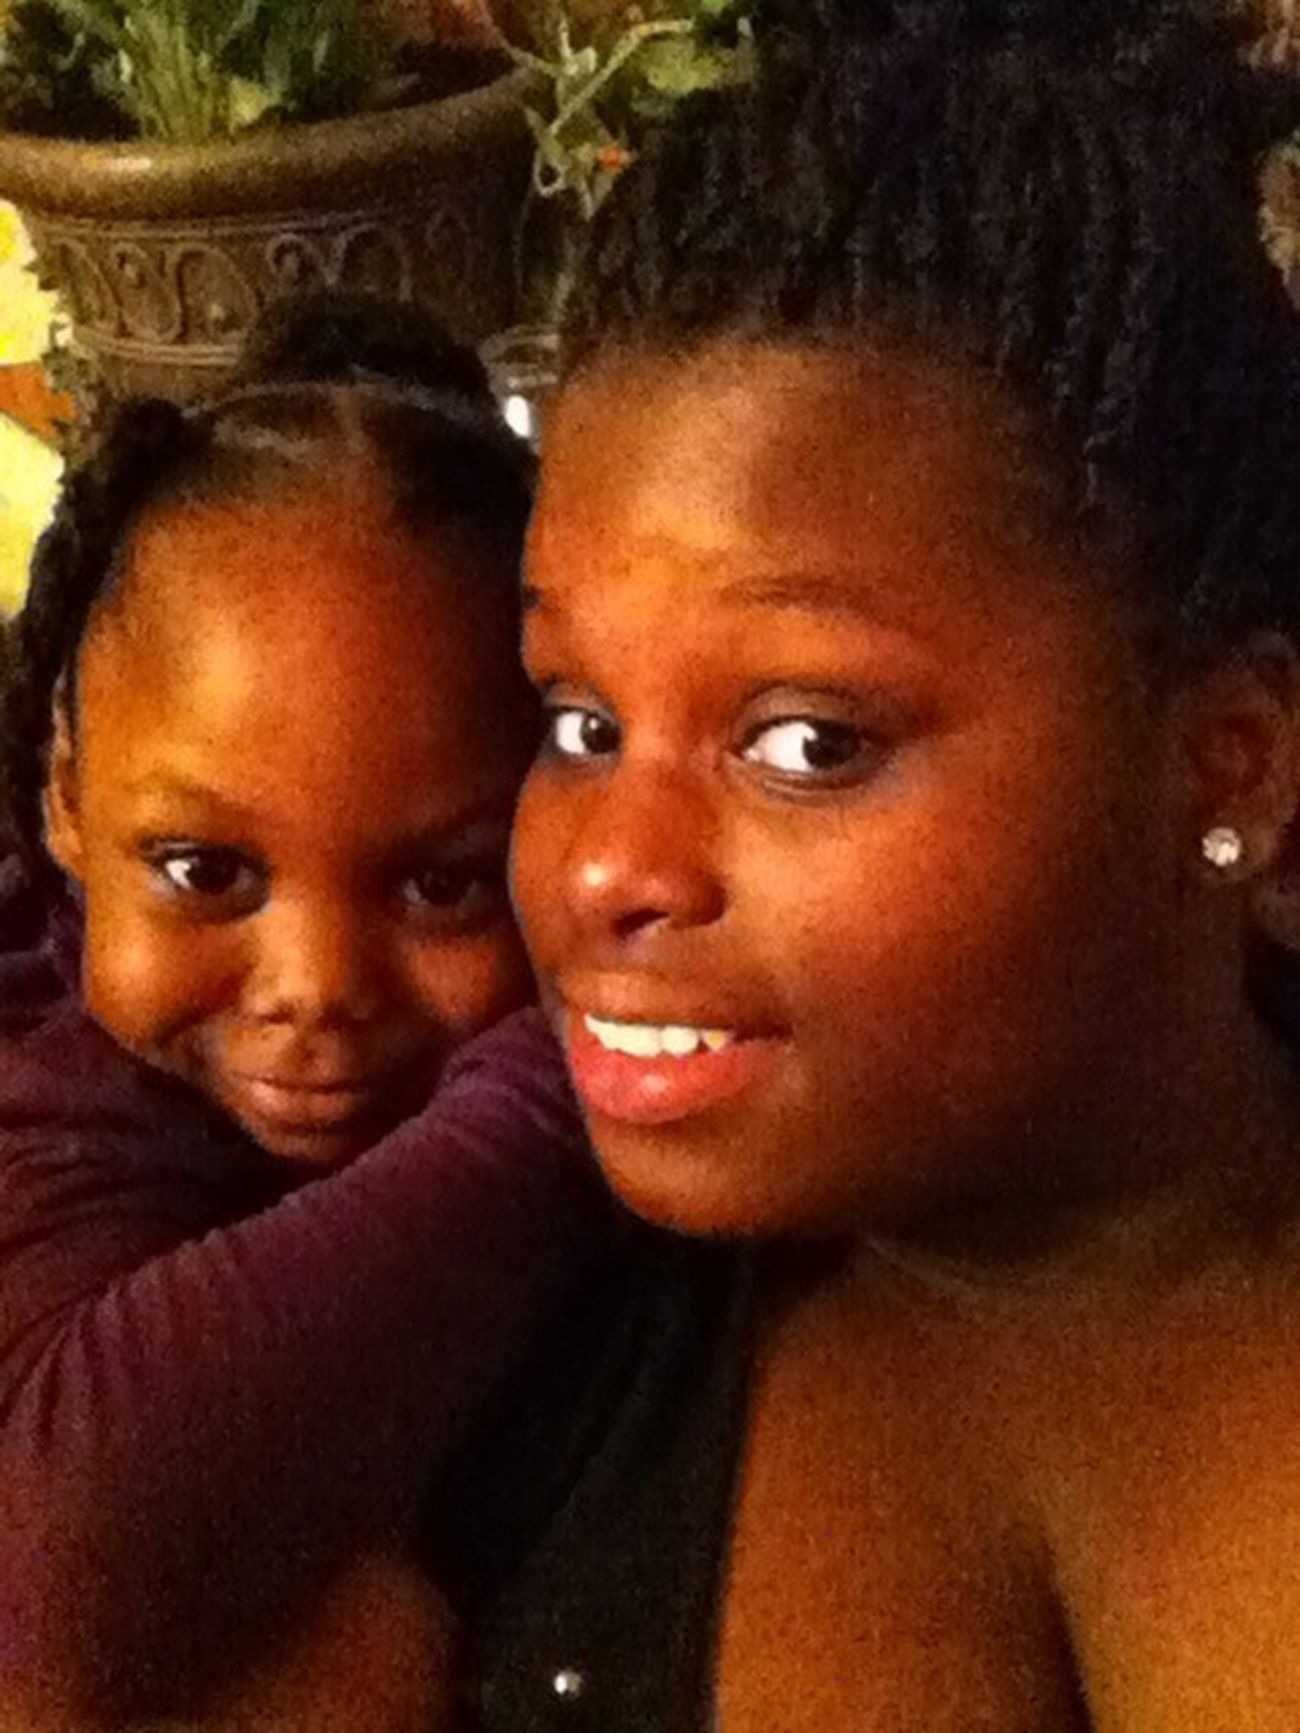 Me & Myy lil niece ! ❤ Her , Da sweeties out of dem all .